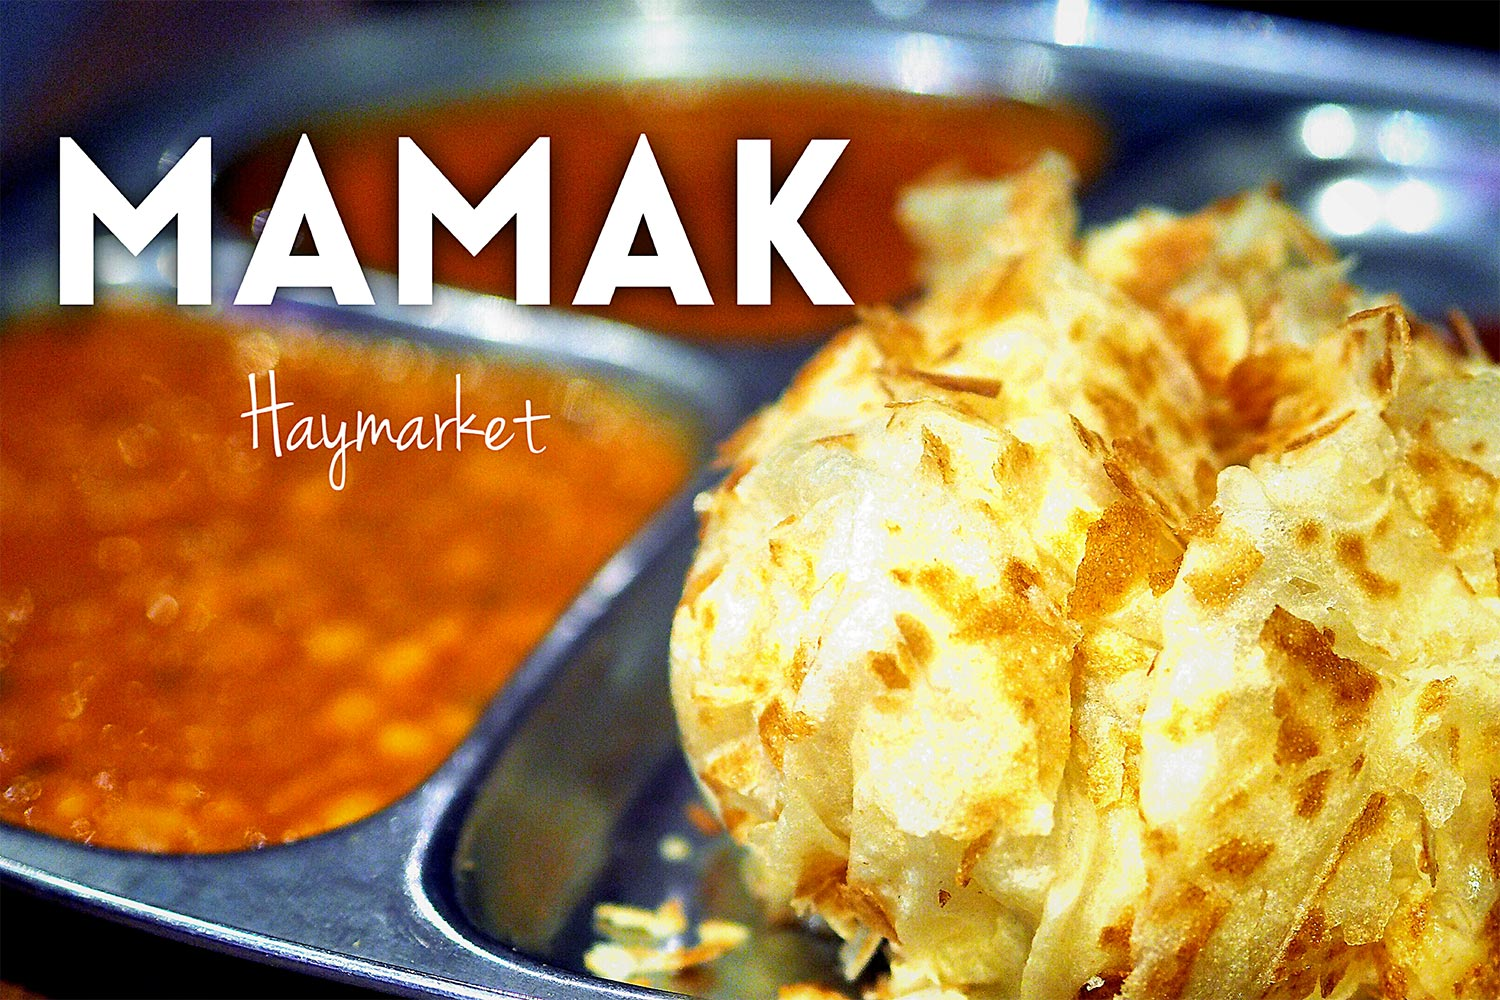 Mamak, Haymarket, Sydney Food Blog Review by Tammi Kwok